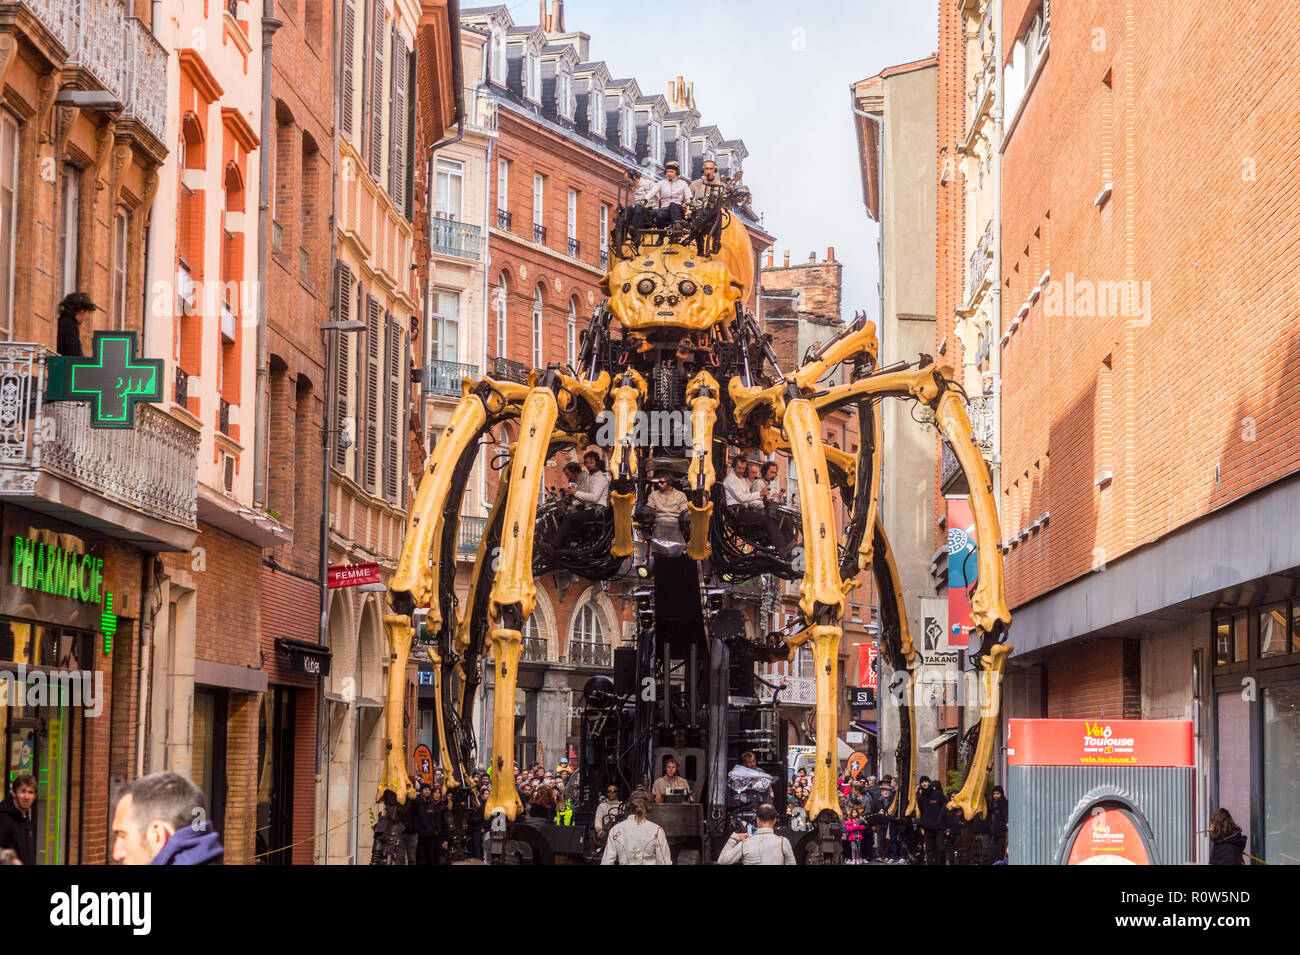 ariane-mechanical-spider-during-steampunk-show-le-gardien-du-temple-by-franois-delarozire-la-machine-capitole-toulouse-occitanie-france-R0W5ND.jpg